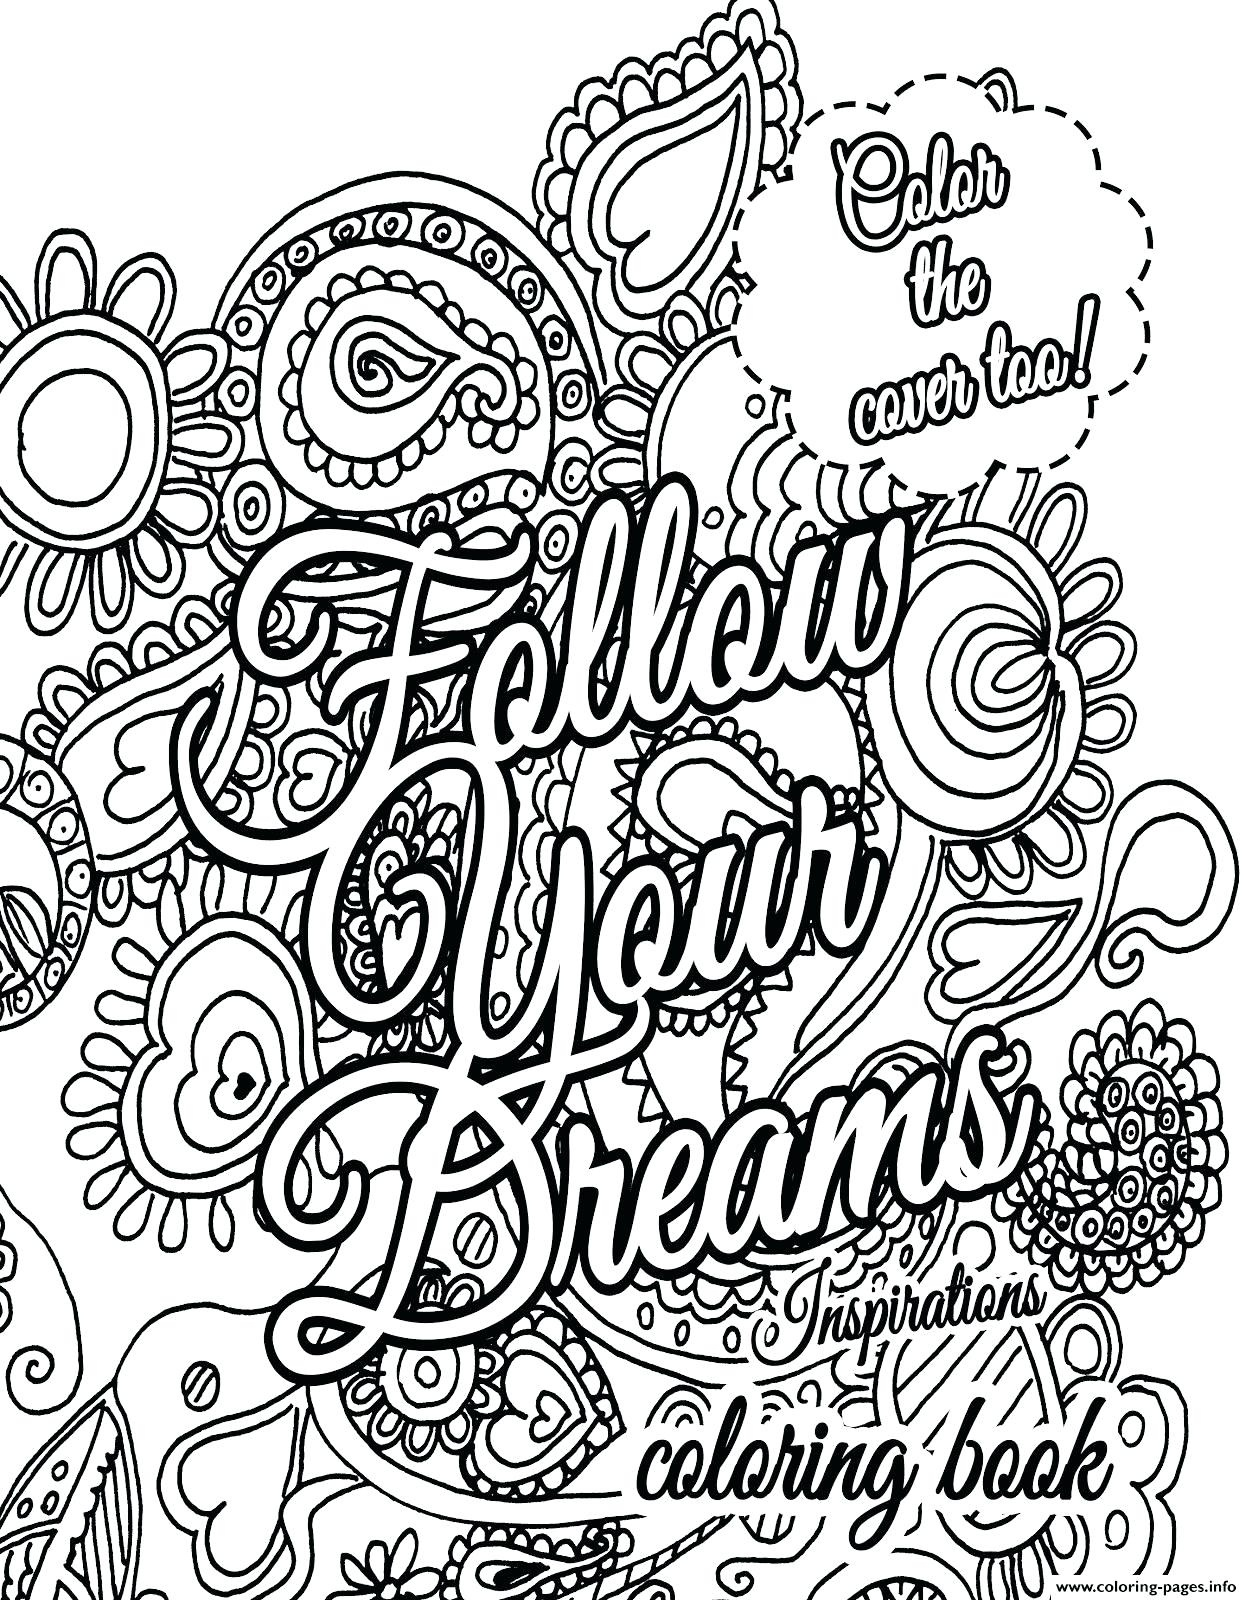 Coloring Pages Quotes - Line Coloring Pages Awesome Free Printable - Free Printable Quote Coloring Pages For Adults